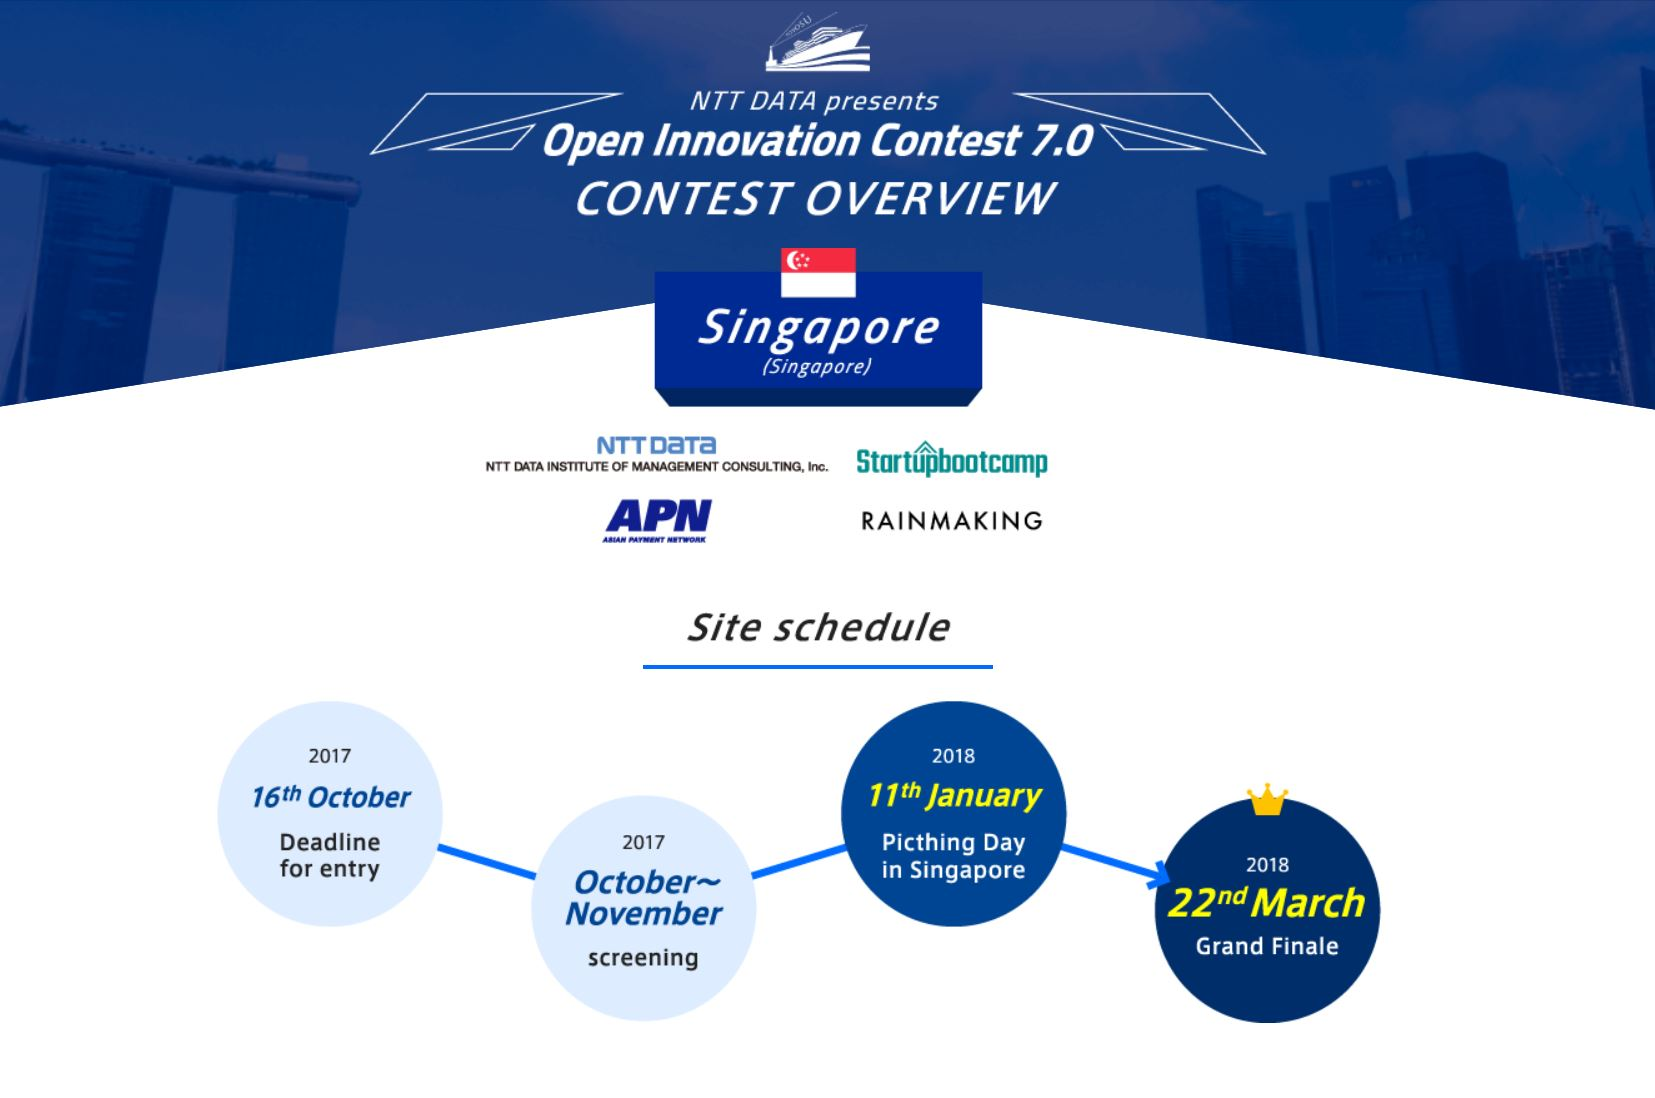 Details on the Singapore Contest